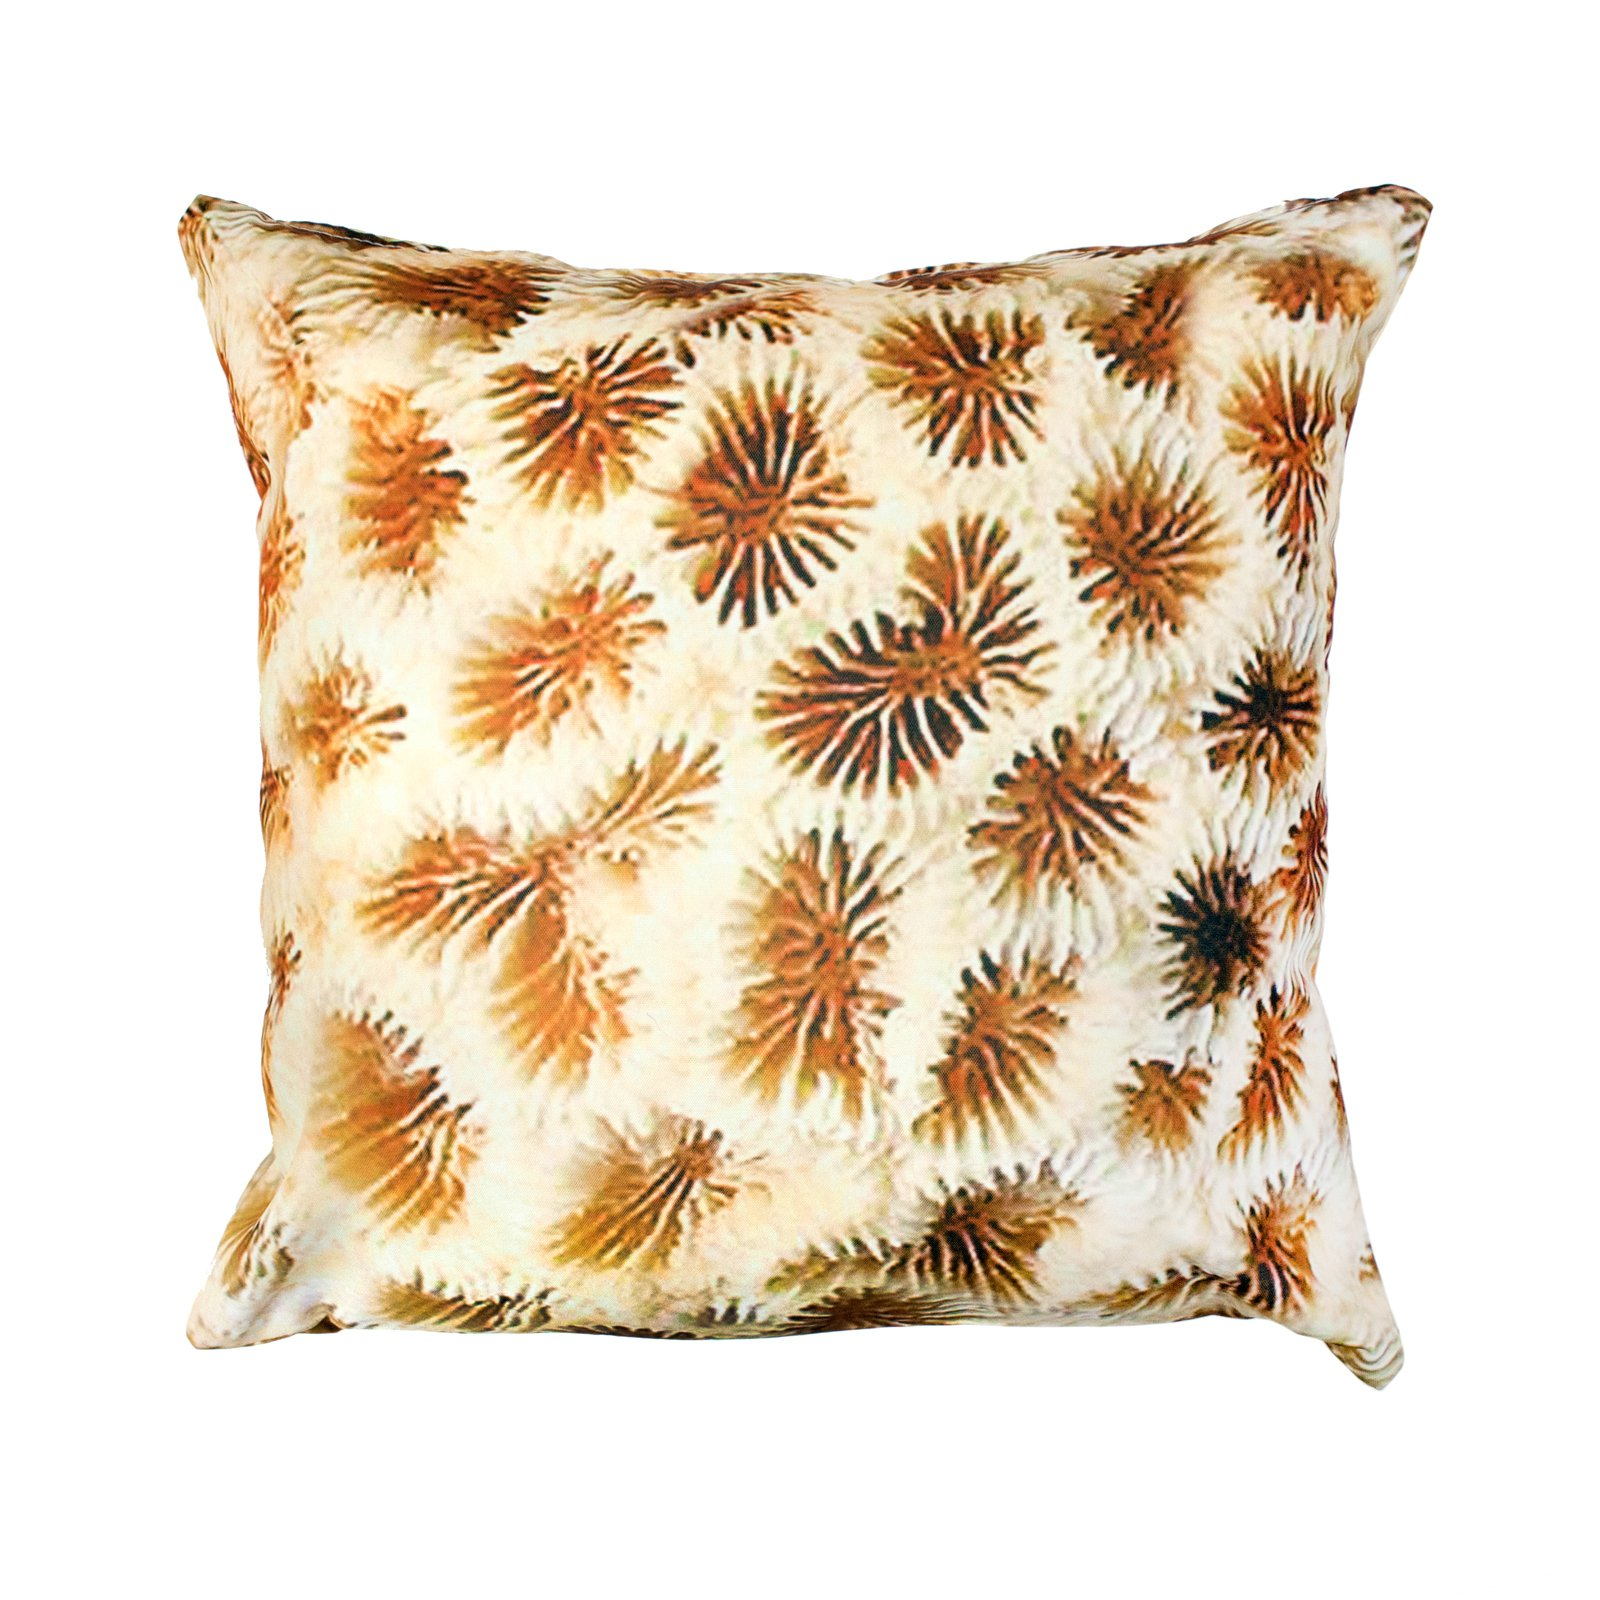 Divine Designs Coral Reef Outdoor Pillow - 20L x 20W in. - Natural / Ivory